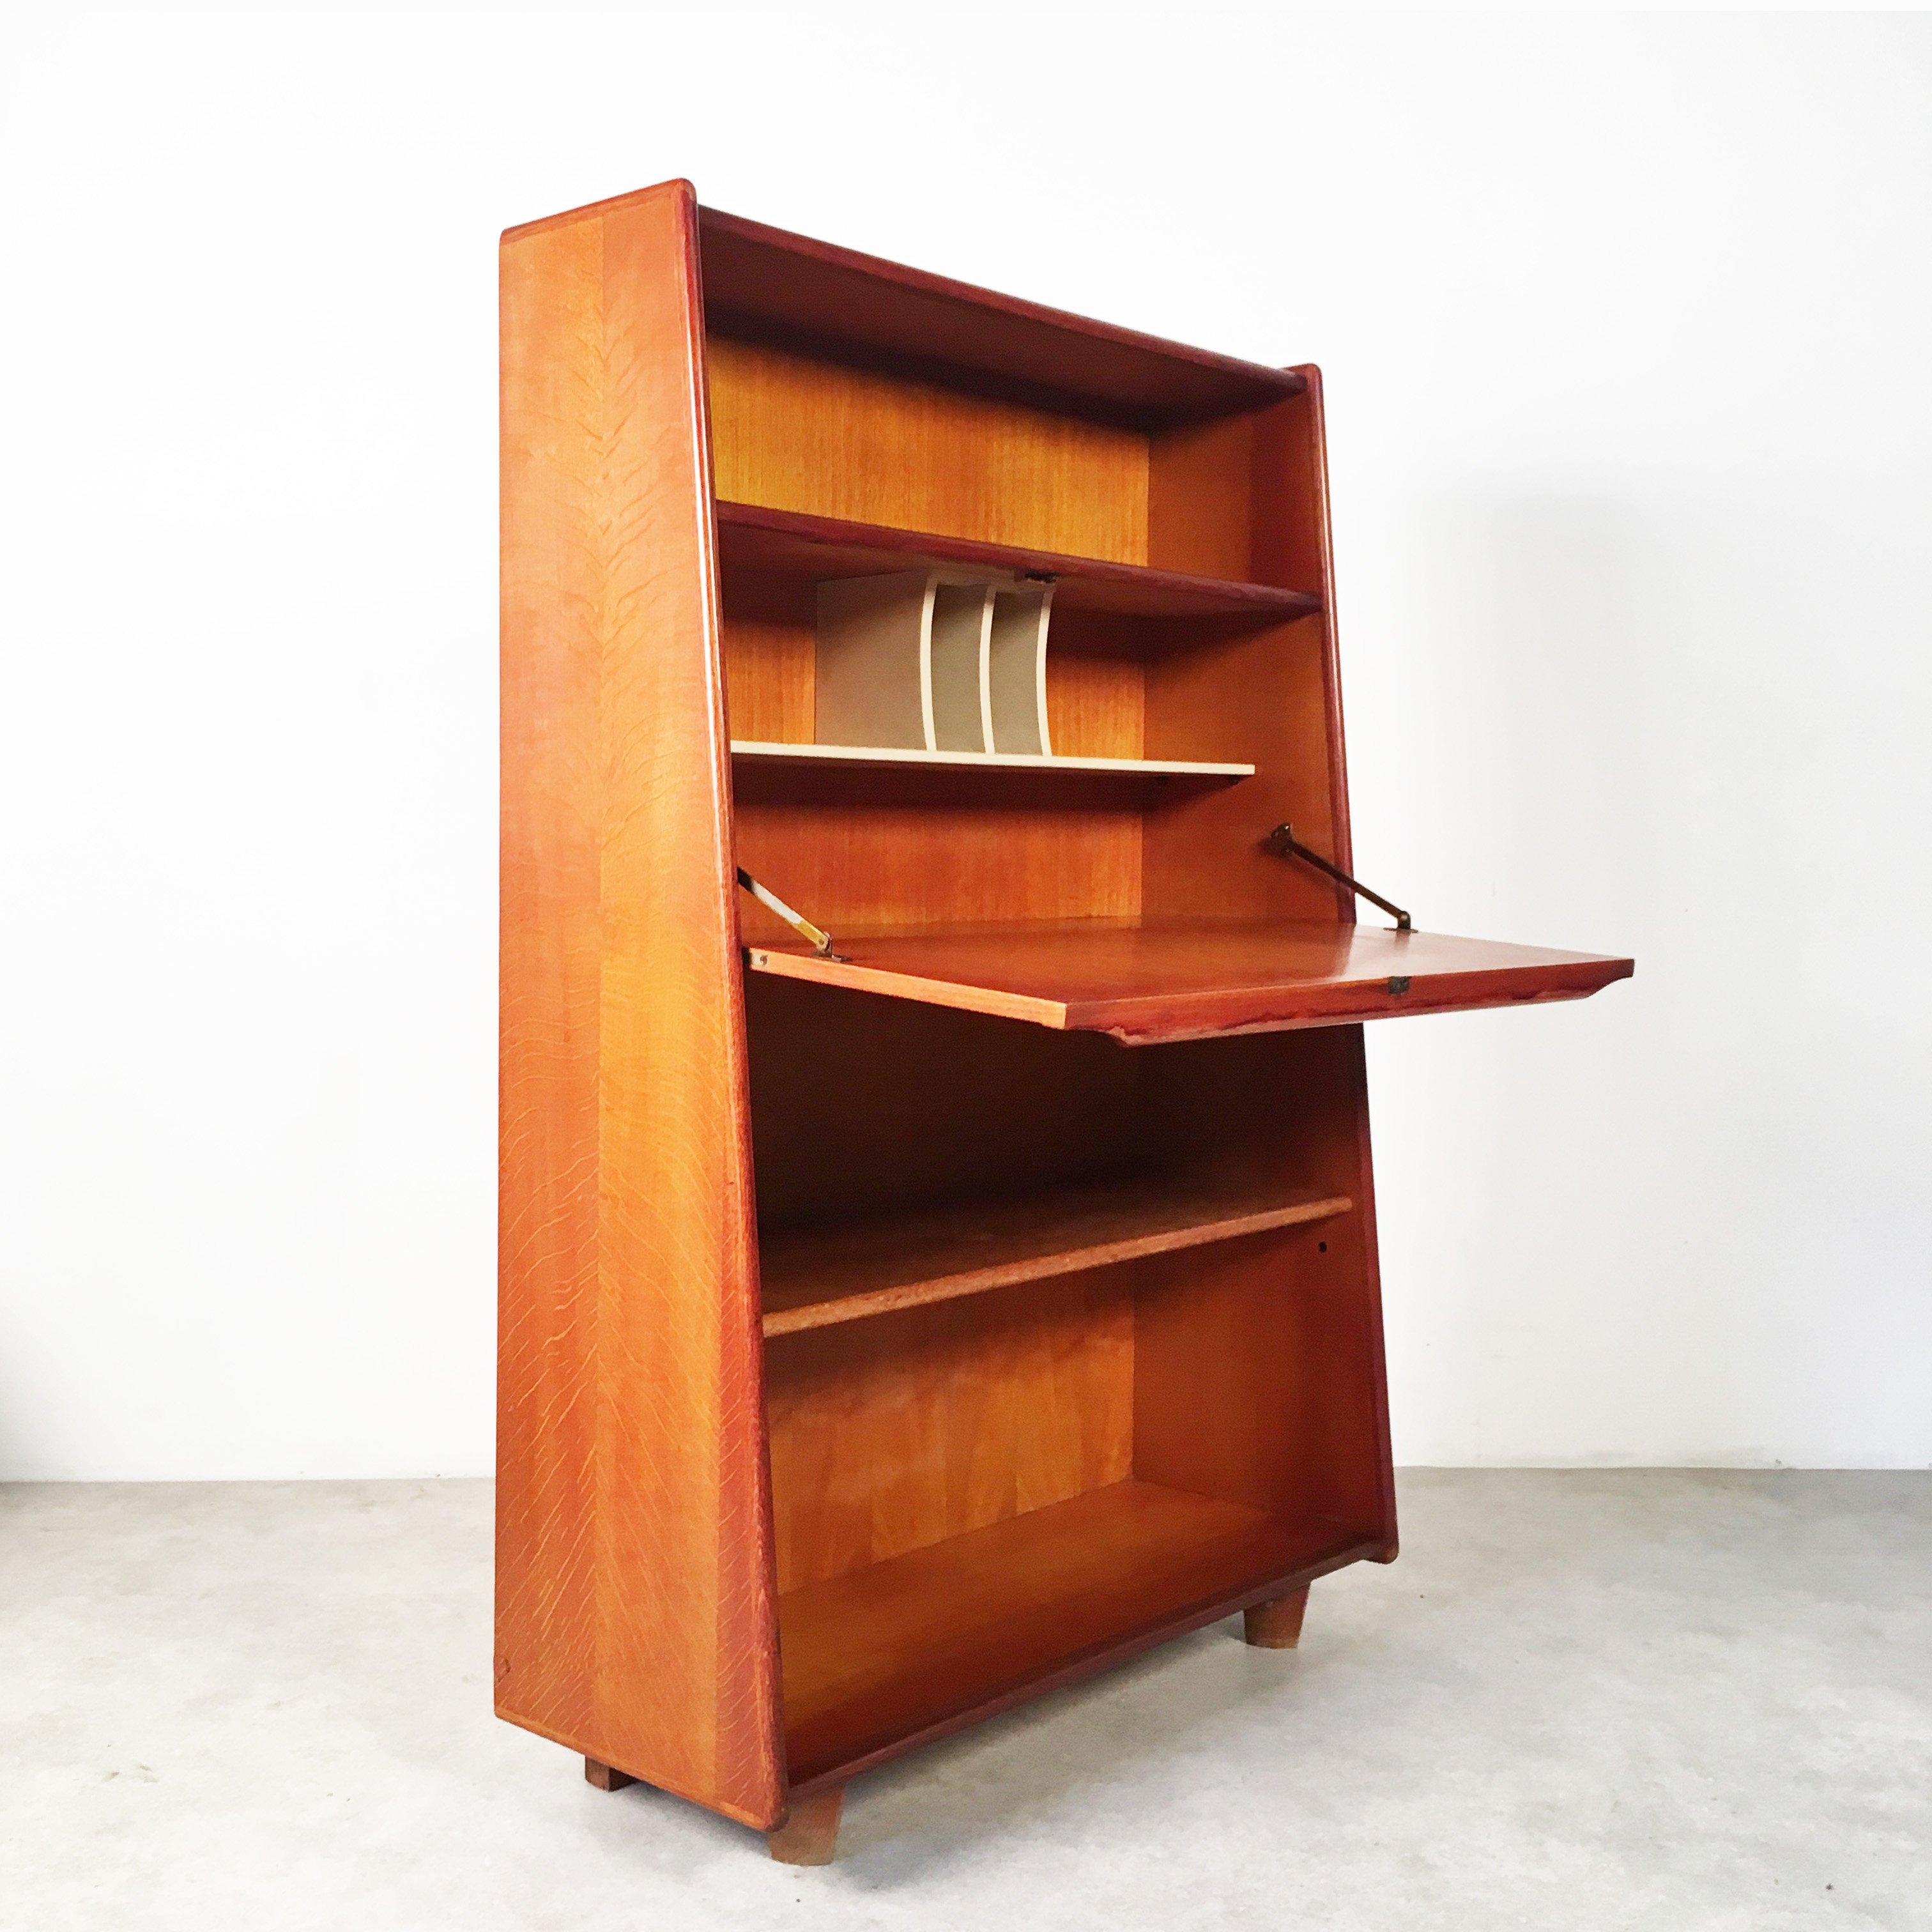 Amazing Oak Series Secretary Cabinet By Cees Braakman For Pastoe, 1950s